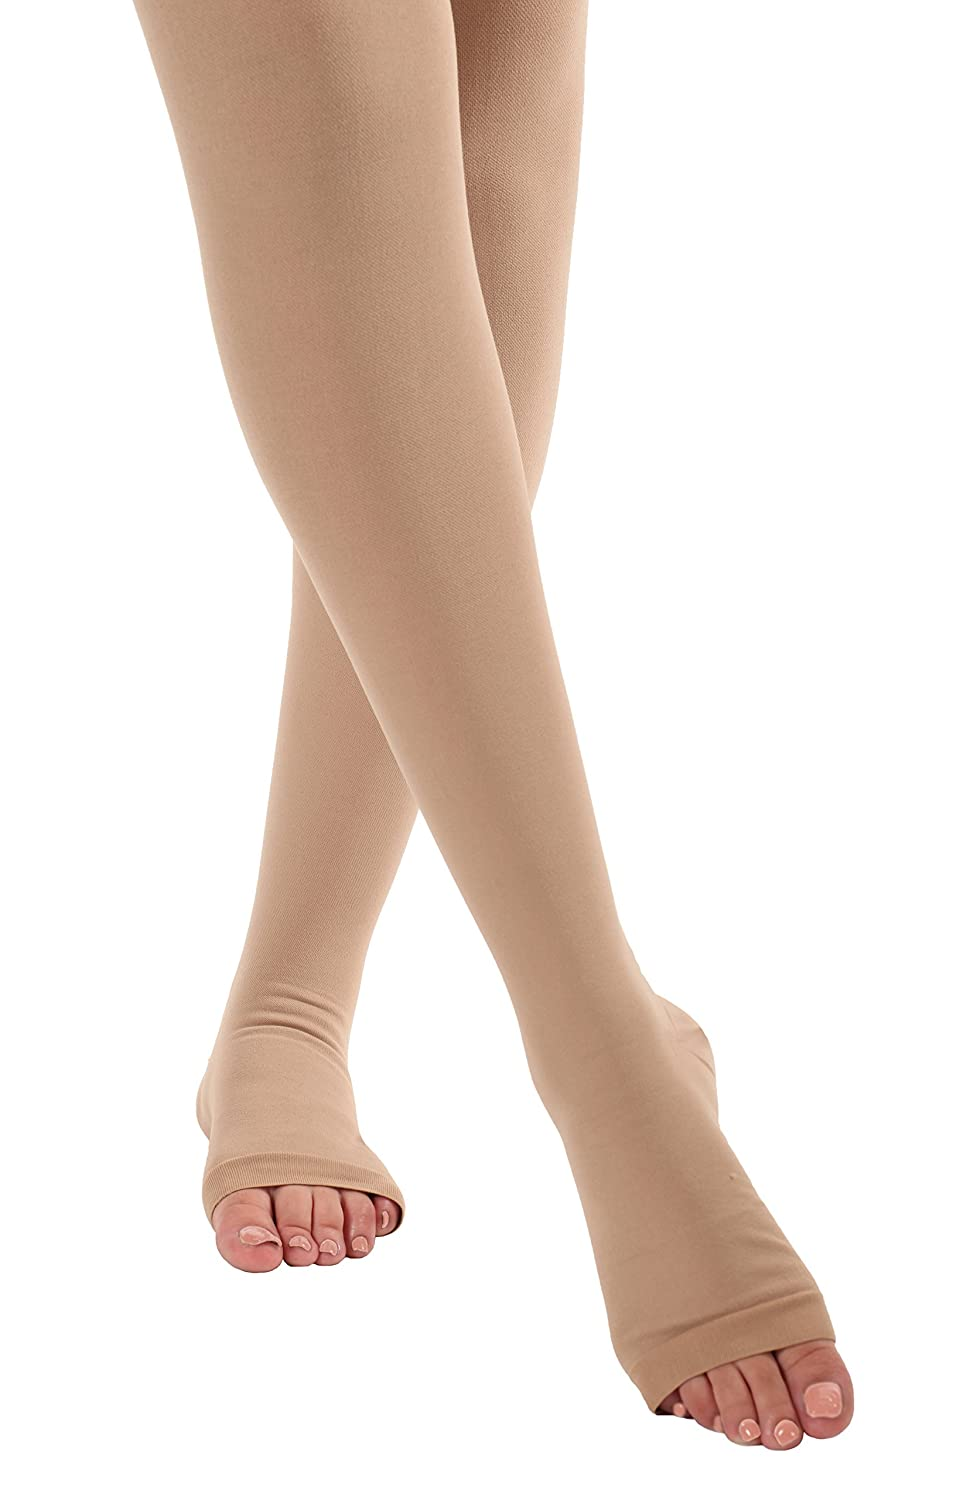 8c6053a8a ... 2XL Opaque Compression Stockings Pantyhose Open Toe - Firm Medical  Graduated Support 20-30mmHg ...